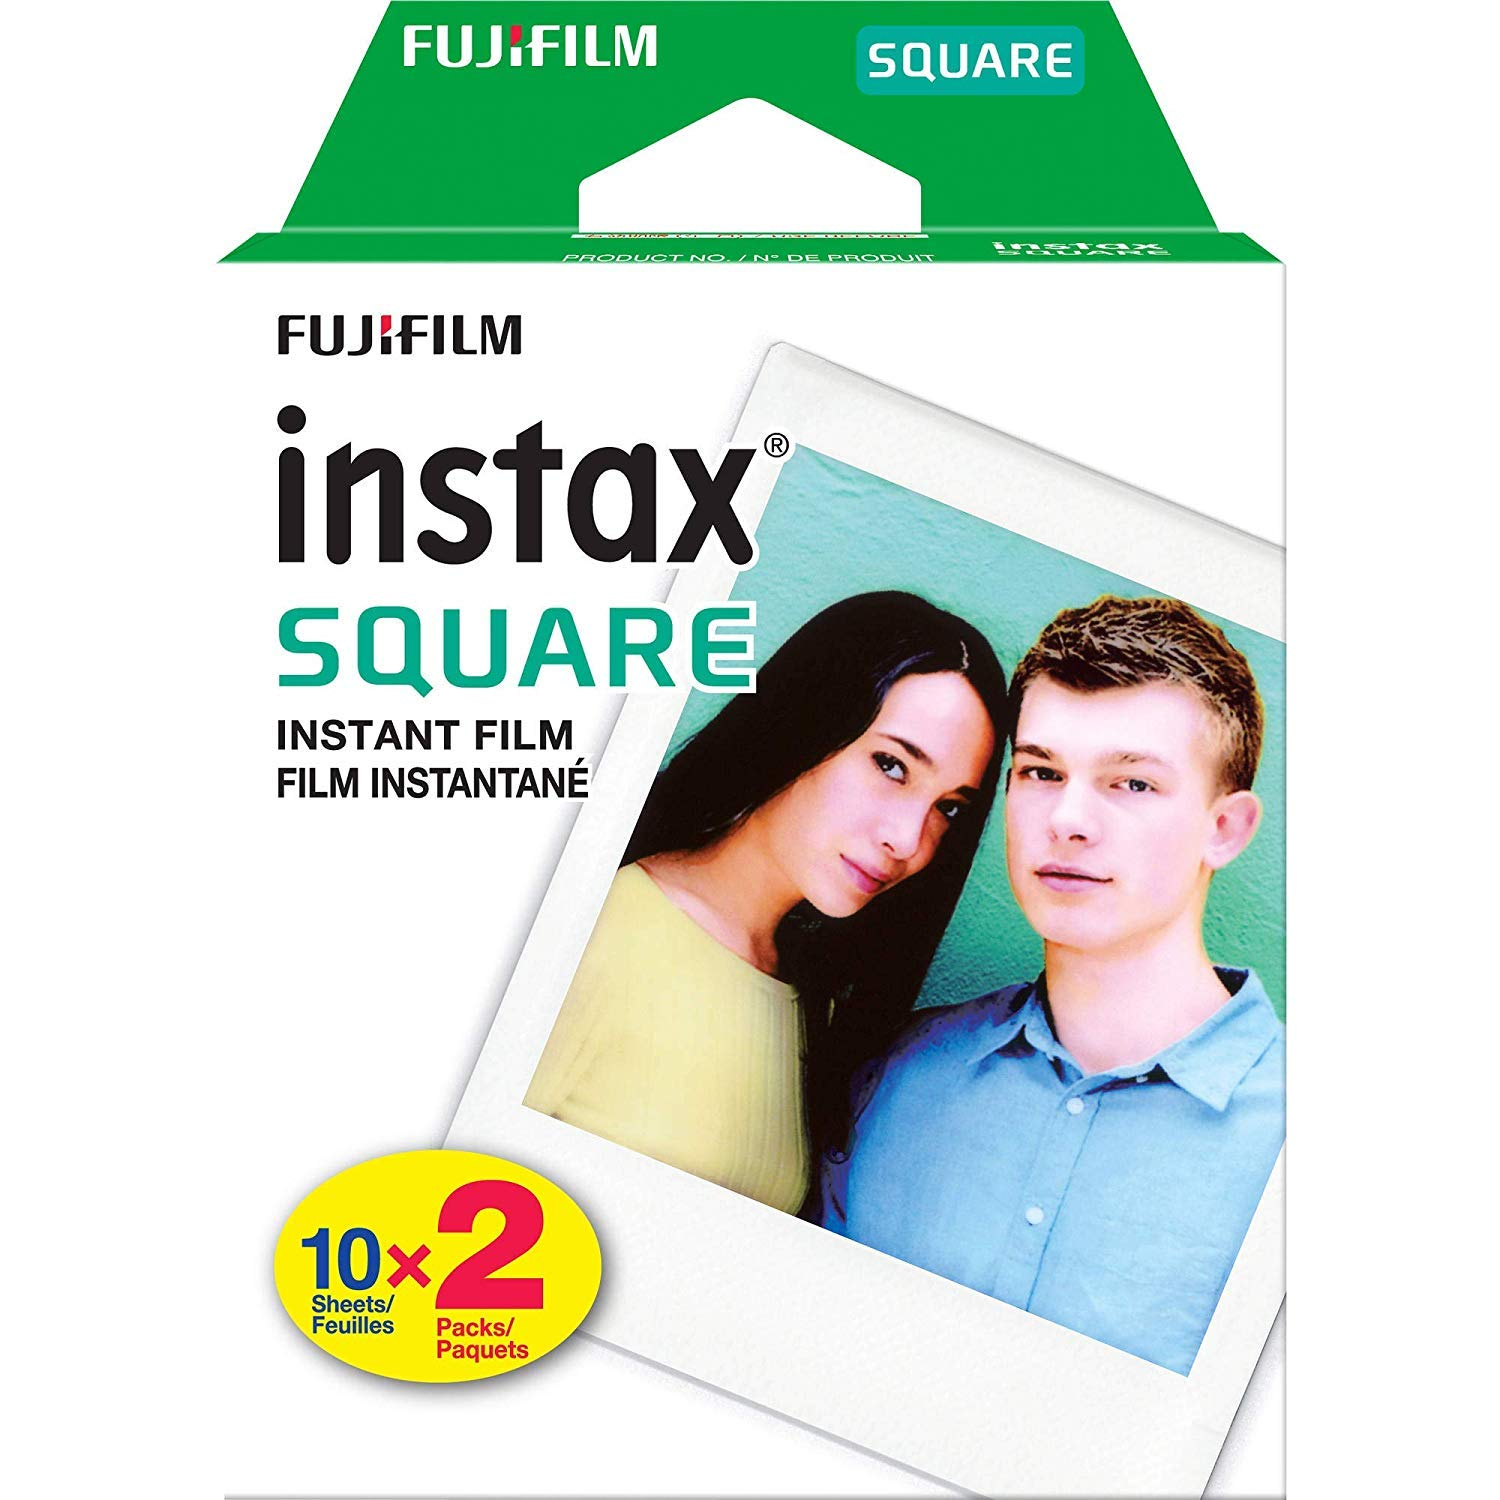 Fujifilm Instax Square SQ20 Hybrid Instant Camera (Black) - Deluxe Accessory Bundle with 40 Sheets of Instant Film + 16GB Micro sd Card + Case + Xpix Camera Strap and More. (USA Warrantty) by Fujifilm (Image #8)